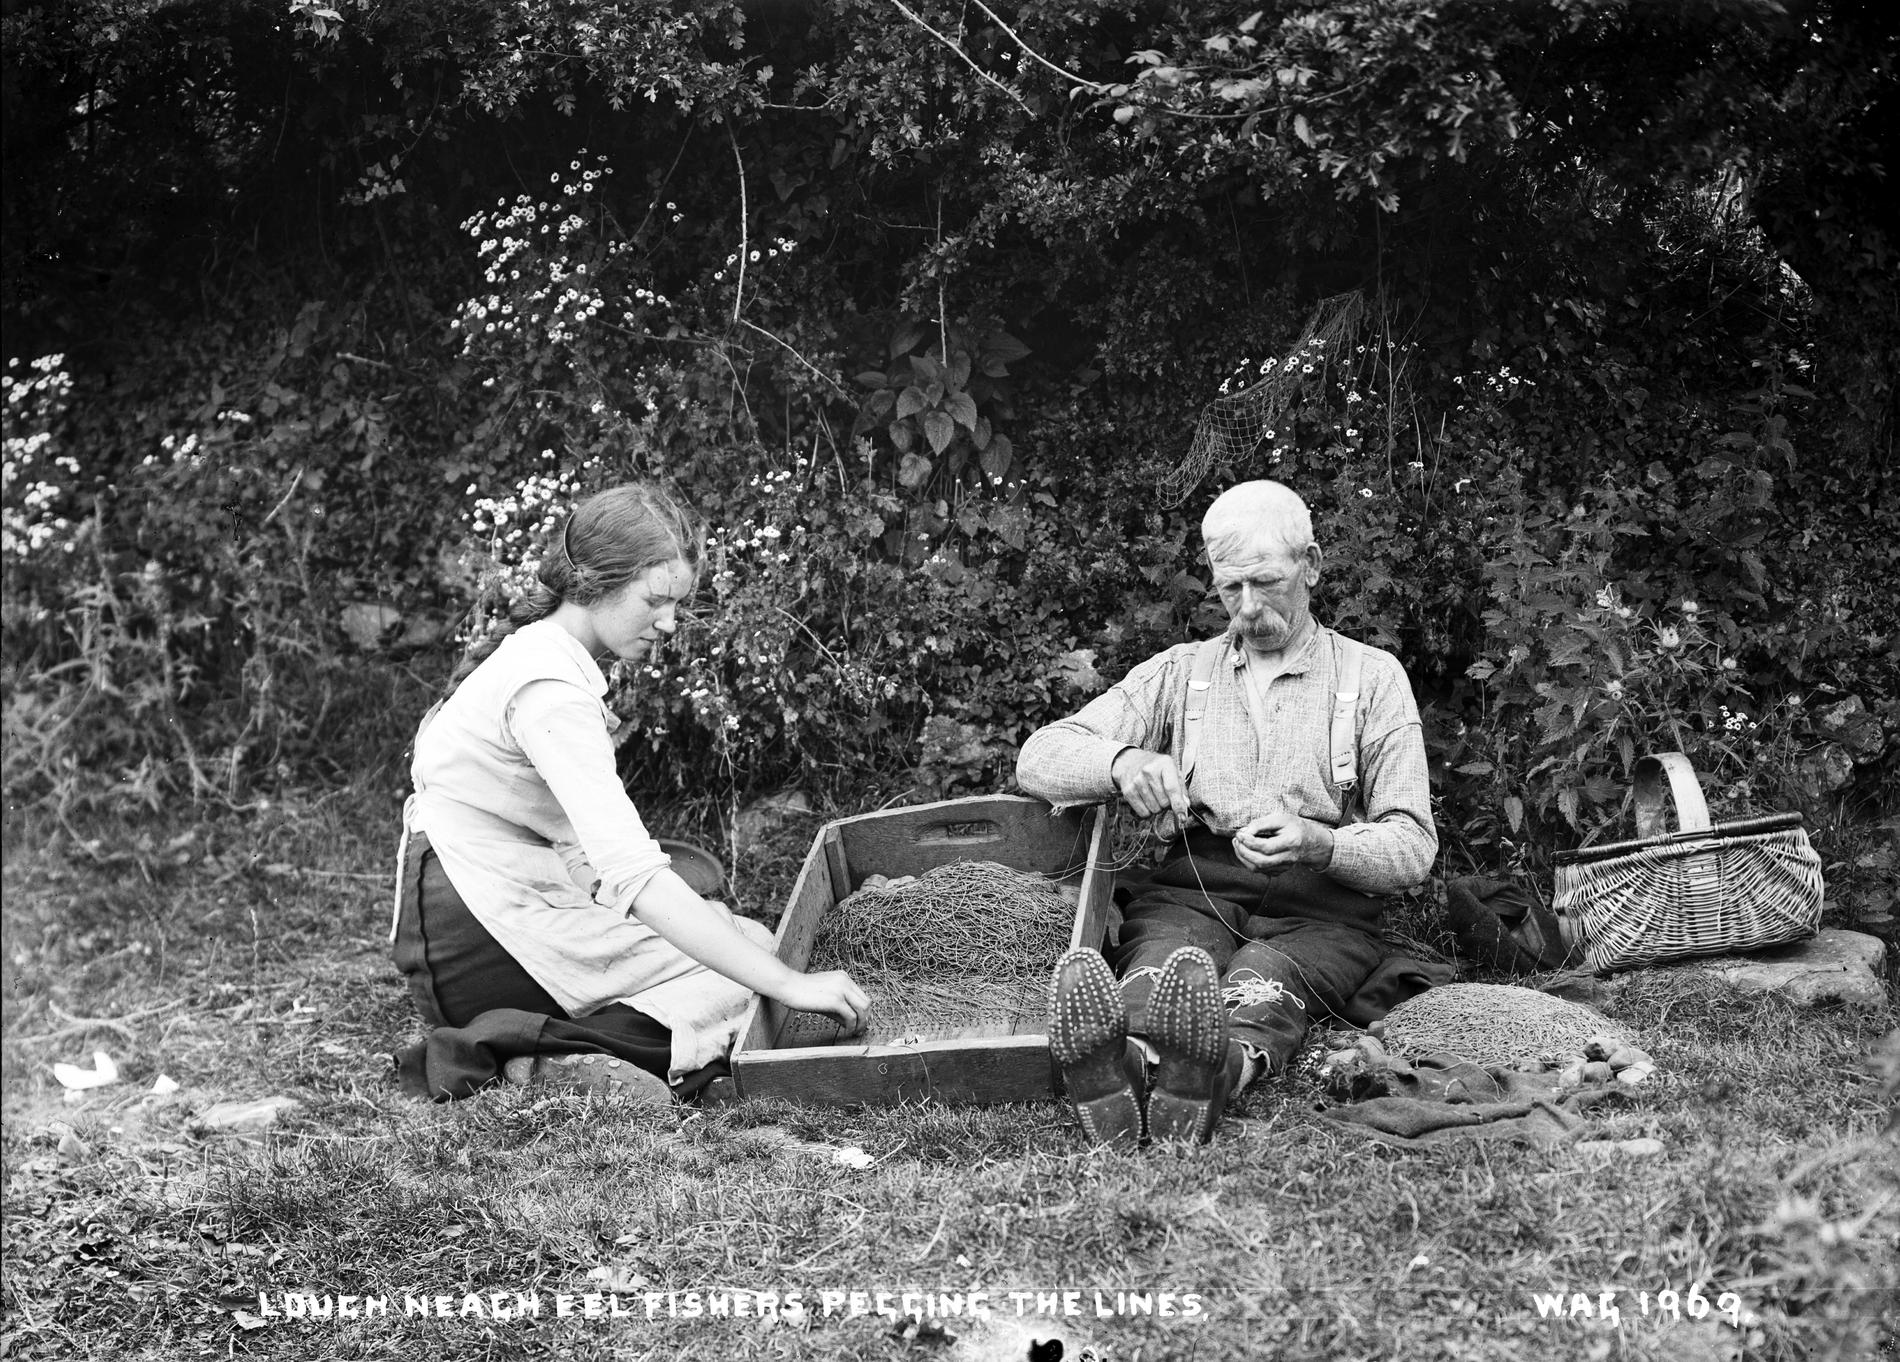 LOUGH NEAGH EEL FISHERS PEGGING THE LINES (Photograph; glass plate negative)